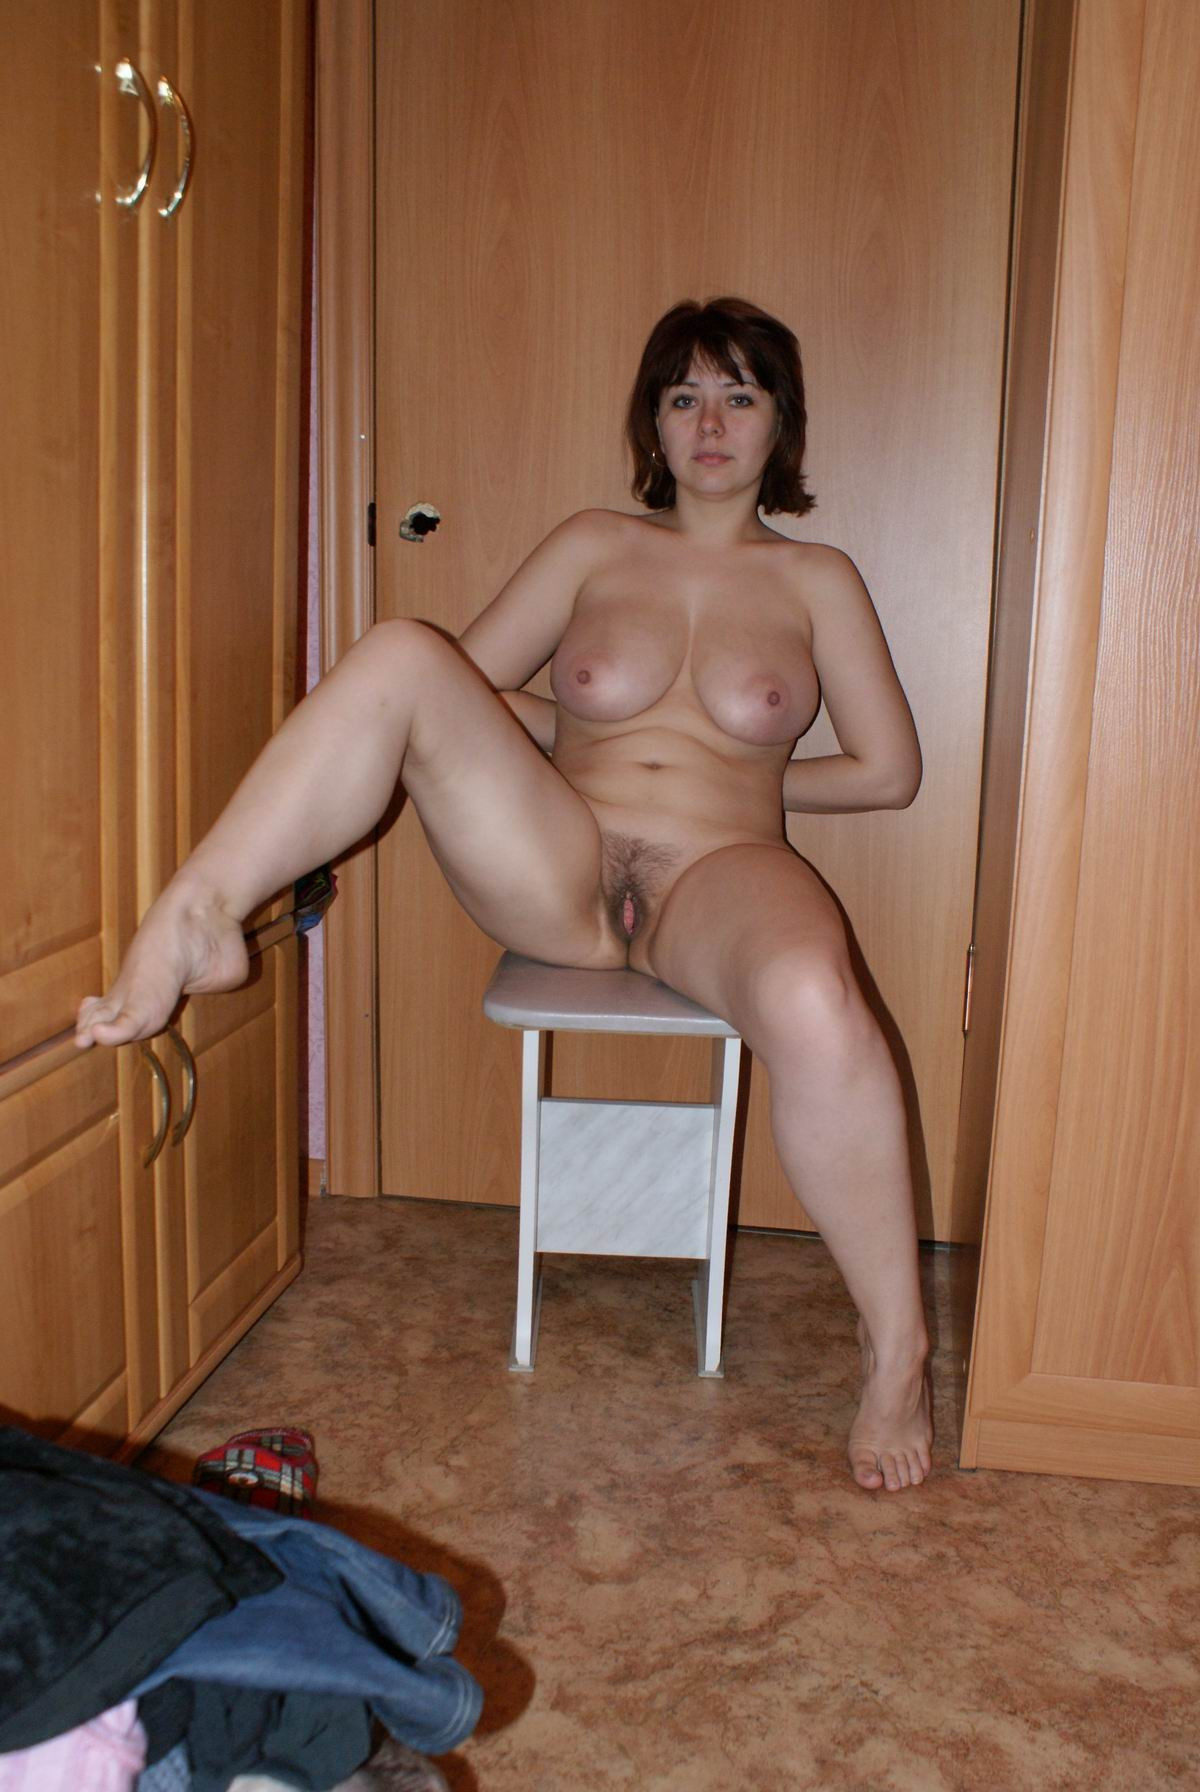 fisting nude Amateur stockings